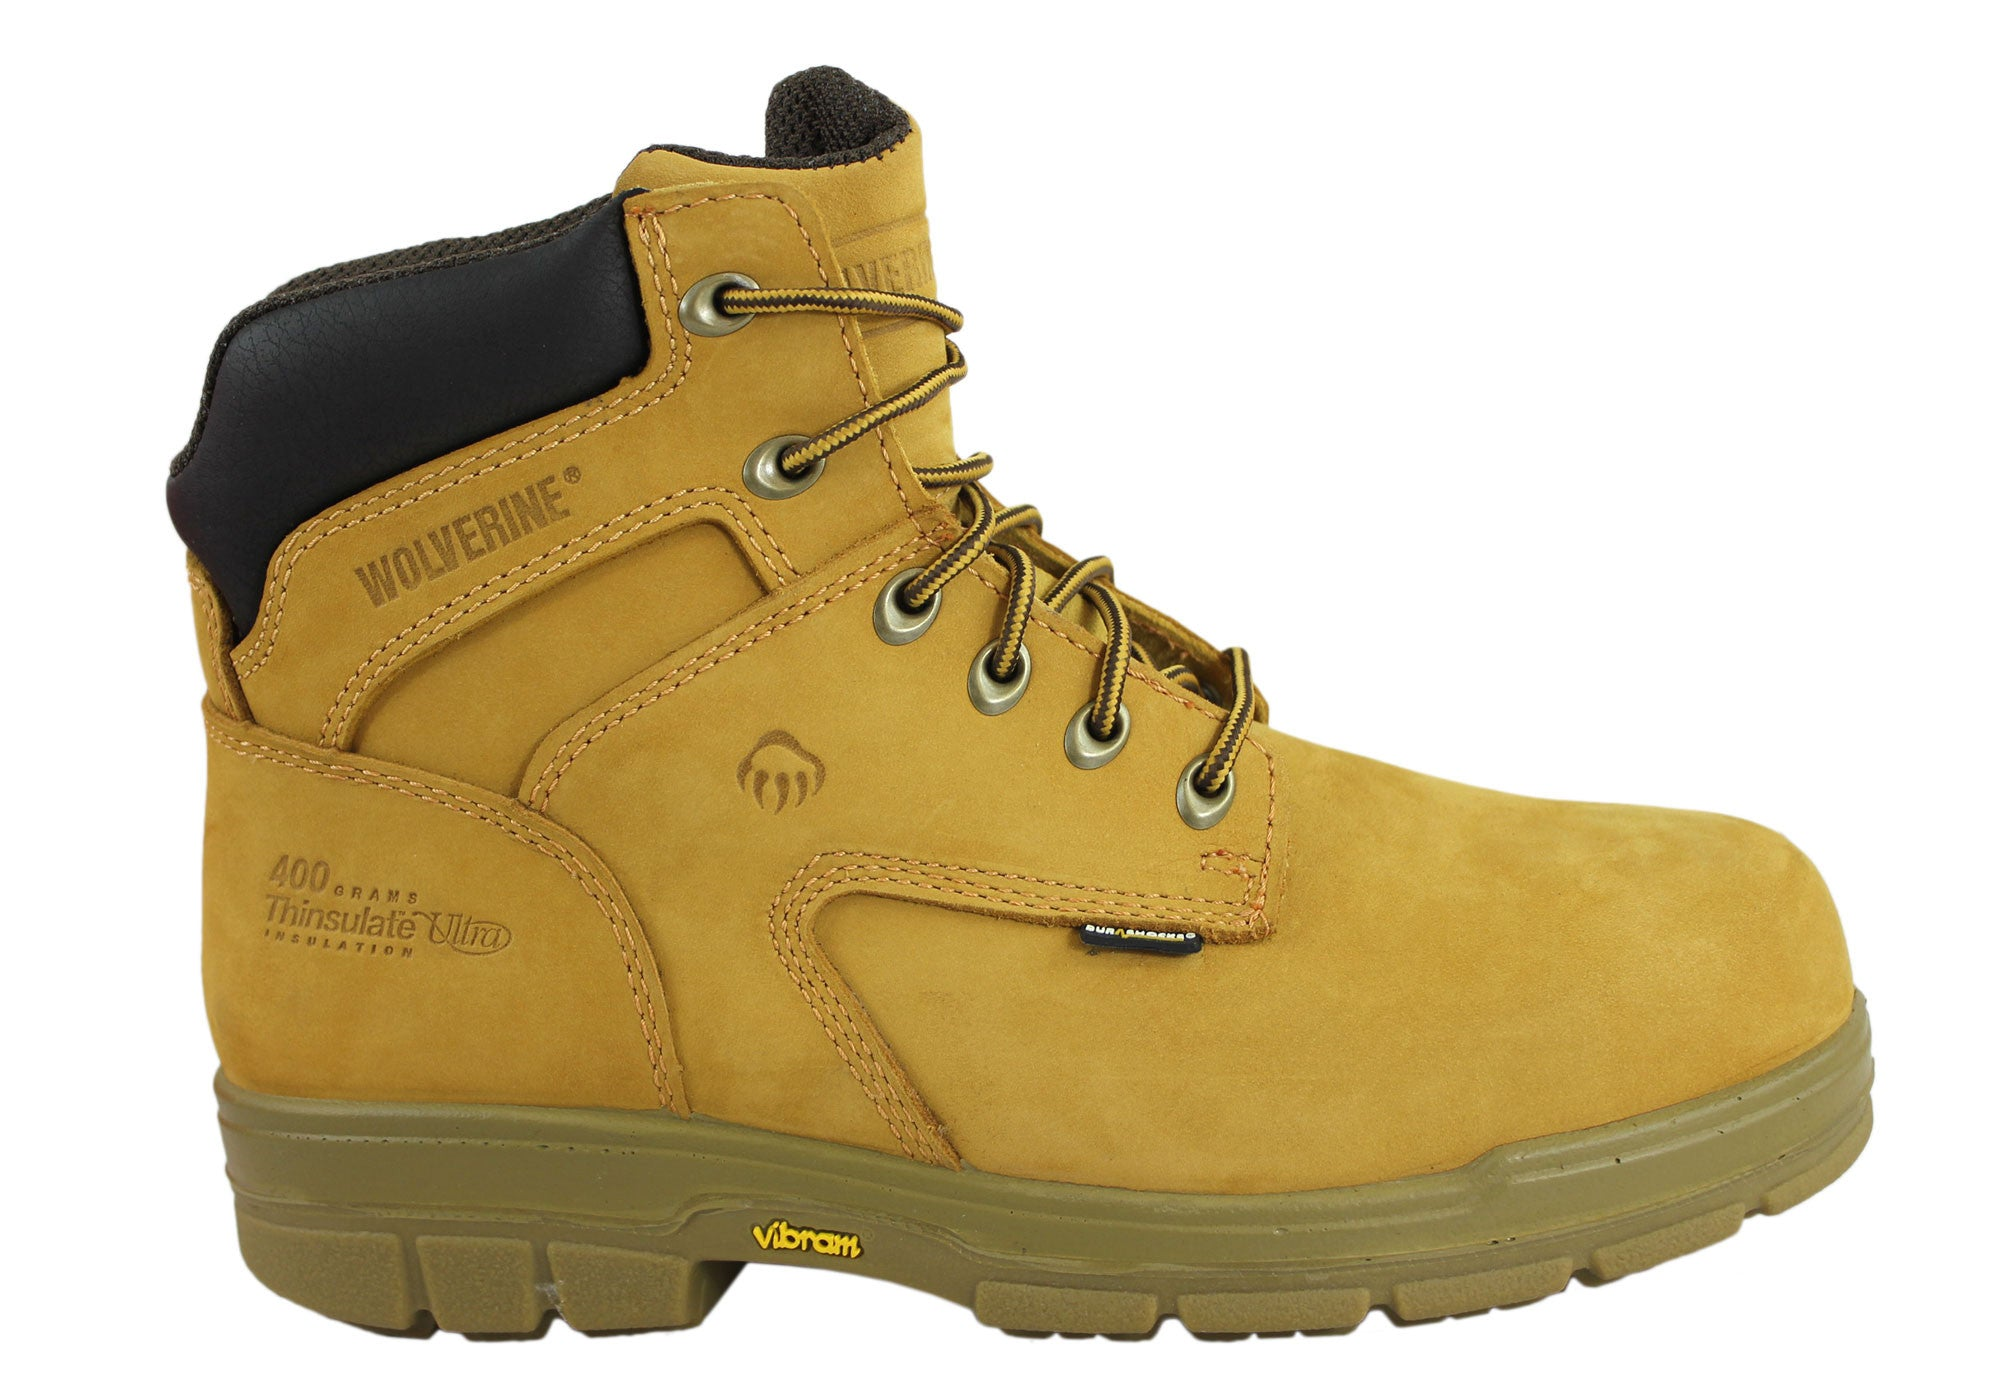 5a3b6e6c5da Wolverine Turner 6 Inch Mens Steel Cap Industrial Lace Up Work Boots